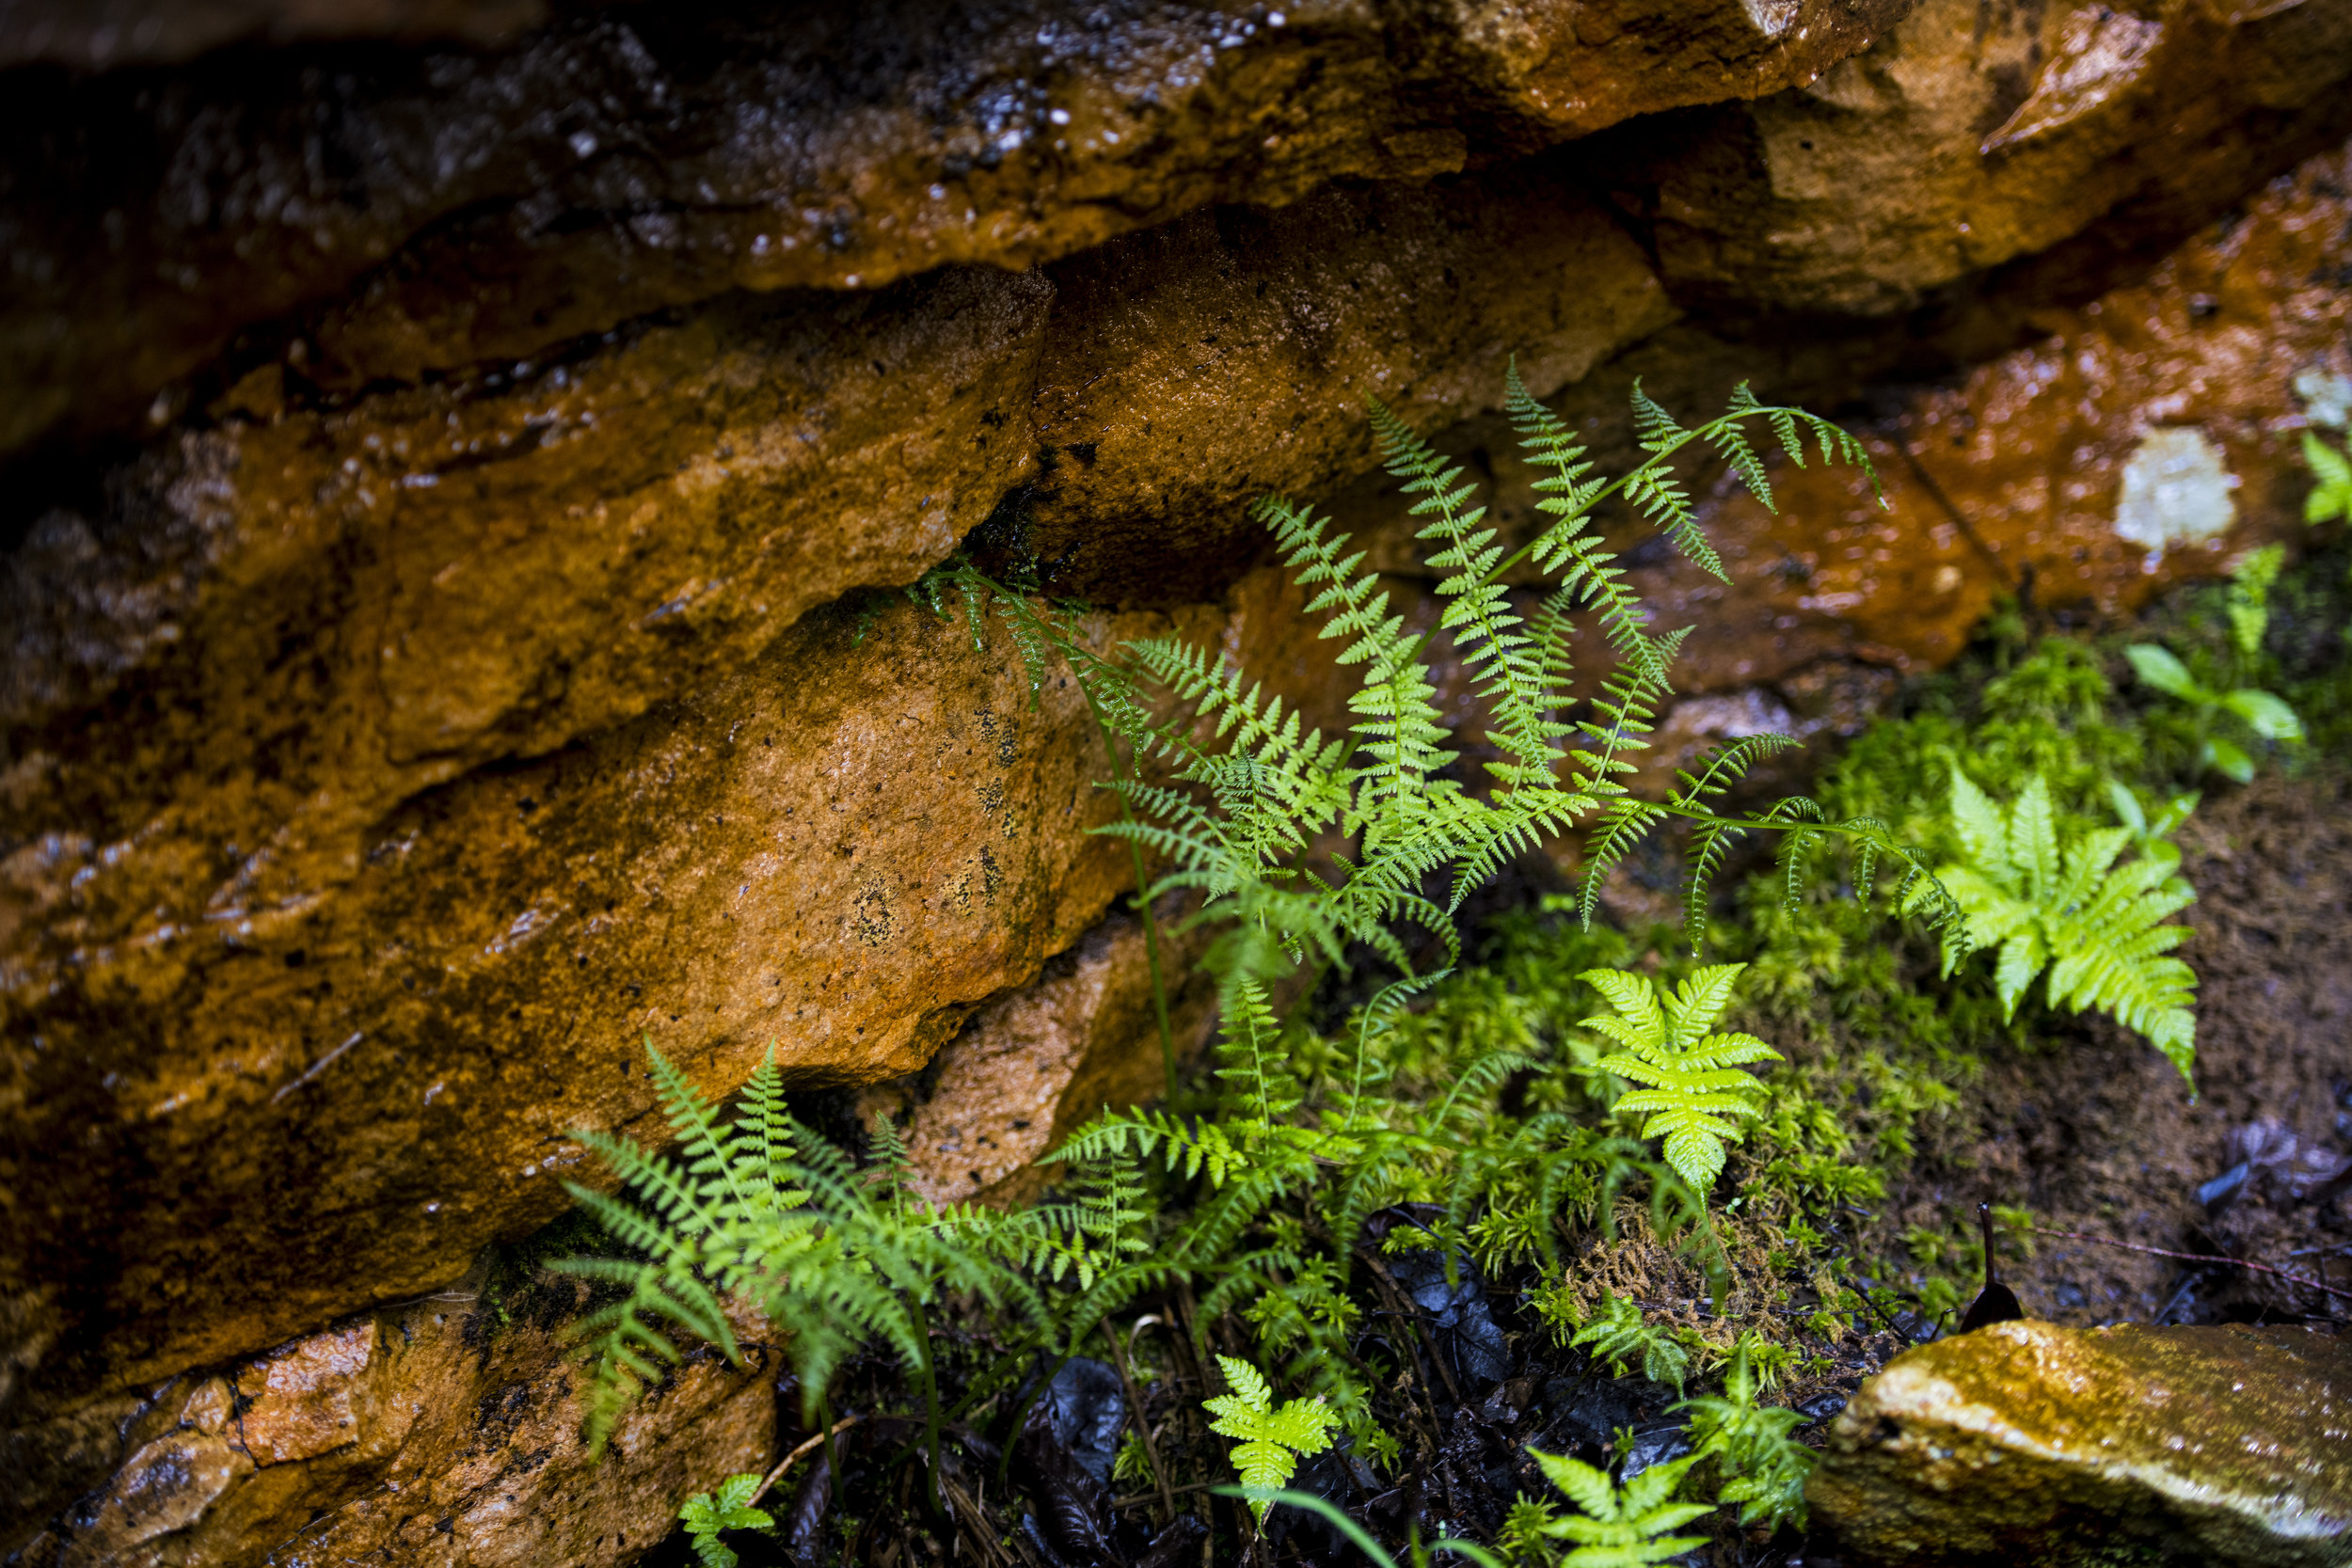 Some ferns grow out of the ground around the falls, where acids from the coal mining that occurred nearly a century ago has stained these rocks. Acids continue to leech into the landscape, despite a cleanup project in the 1990s.